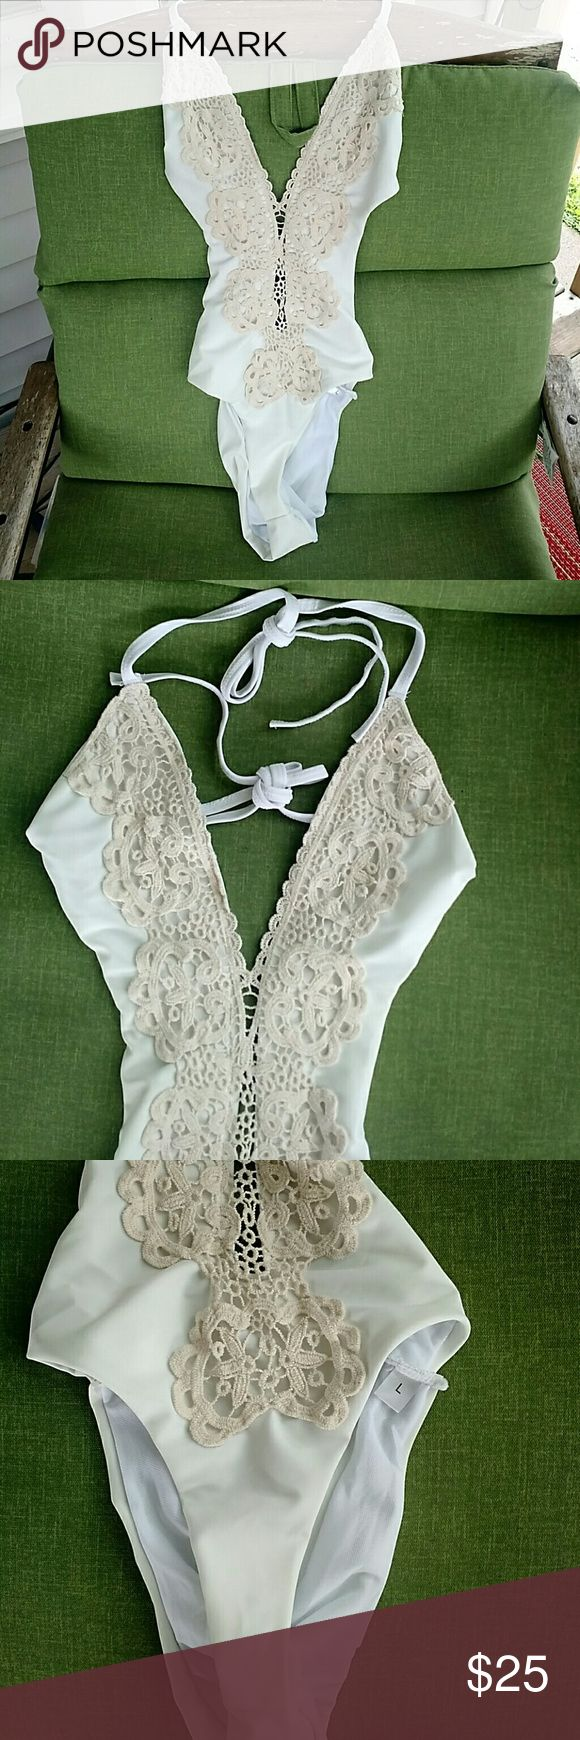 Super Sexy One piece- White Version. Cream one piece swim suit with crocheted accent. No padding. Ties around neck and back. Brand new! Never tried on or worn! Looks like medium. Not a big suit. Swim One Pieces